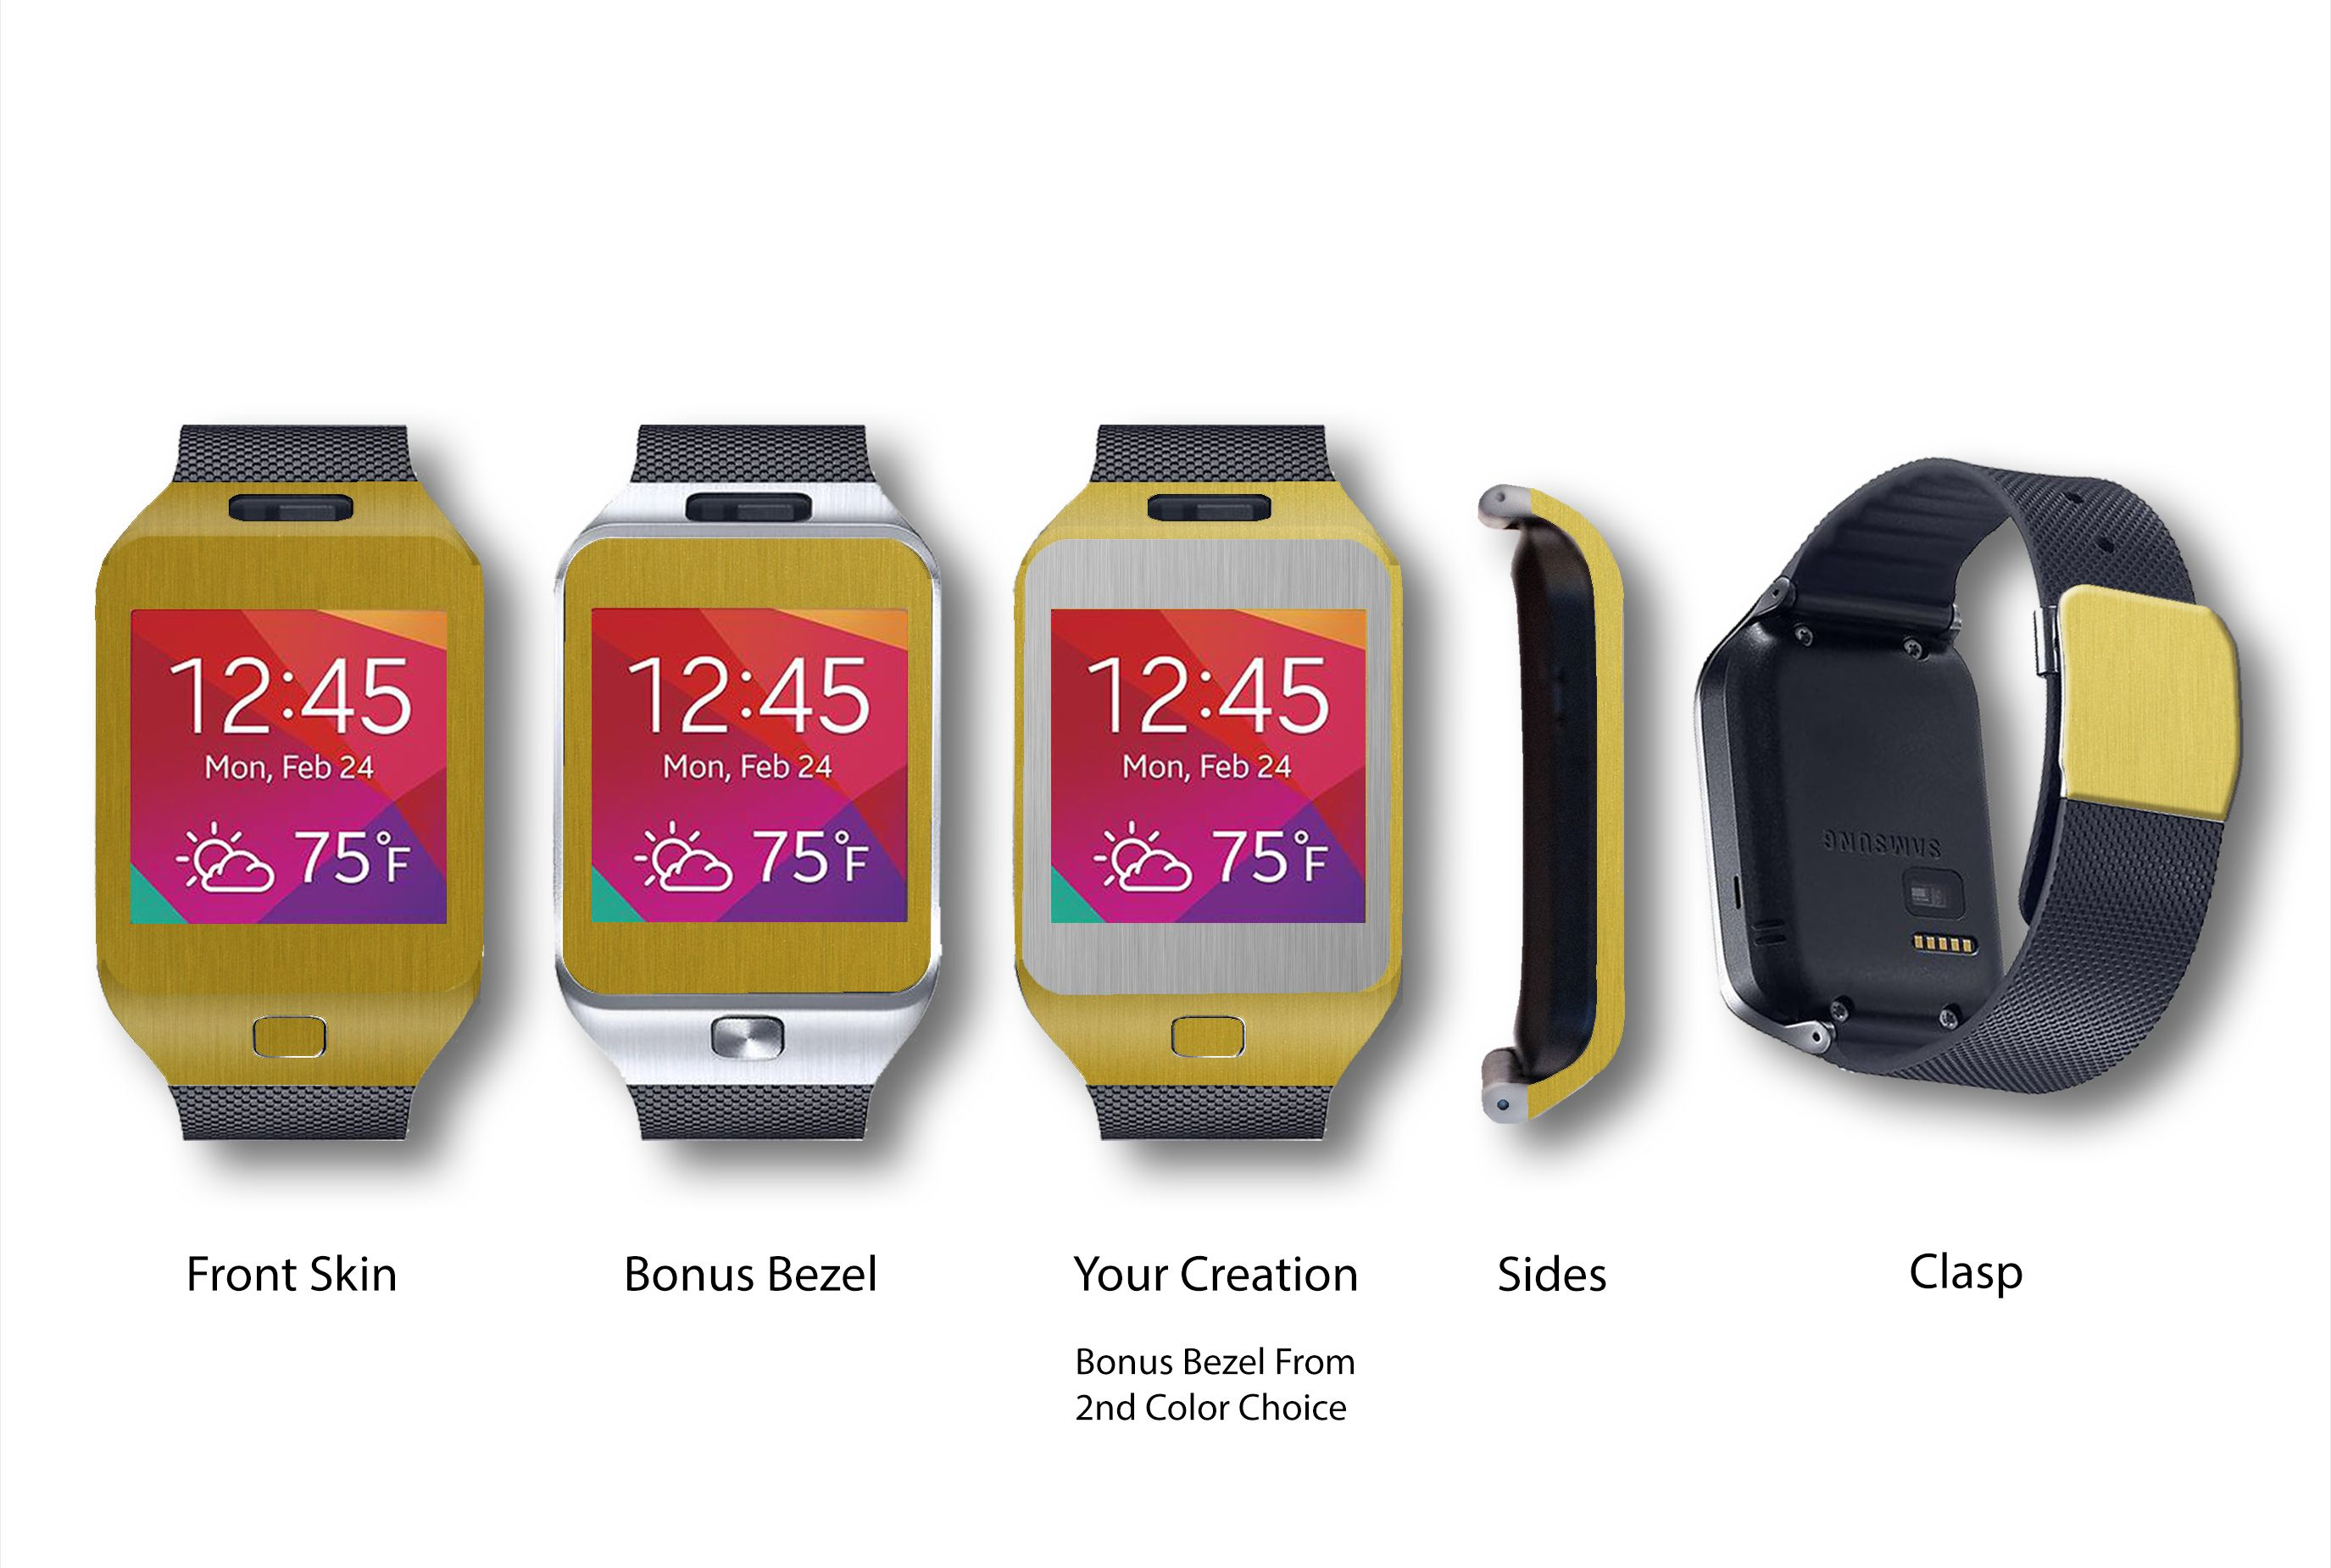 Gold Brushed Aluminum #Samsung #Galaxy #Gear #Gear2 #Watch #SmartWatch #Android #Phone #Phones #Technology #Electronics #Gadgets #Metal #Metallic #Gold #Graphite #Silver #RoseGold #SlateJetBlack #Stickerboy #Sticker #Stickers #Skin #Skins #Wrap #Wraps #Decal #Decals #Protection #Protector #Shield #Shields #Vinyls #3M